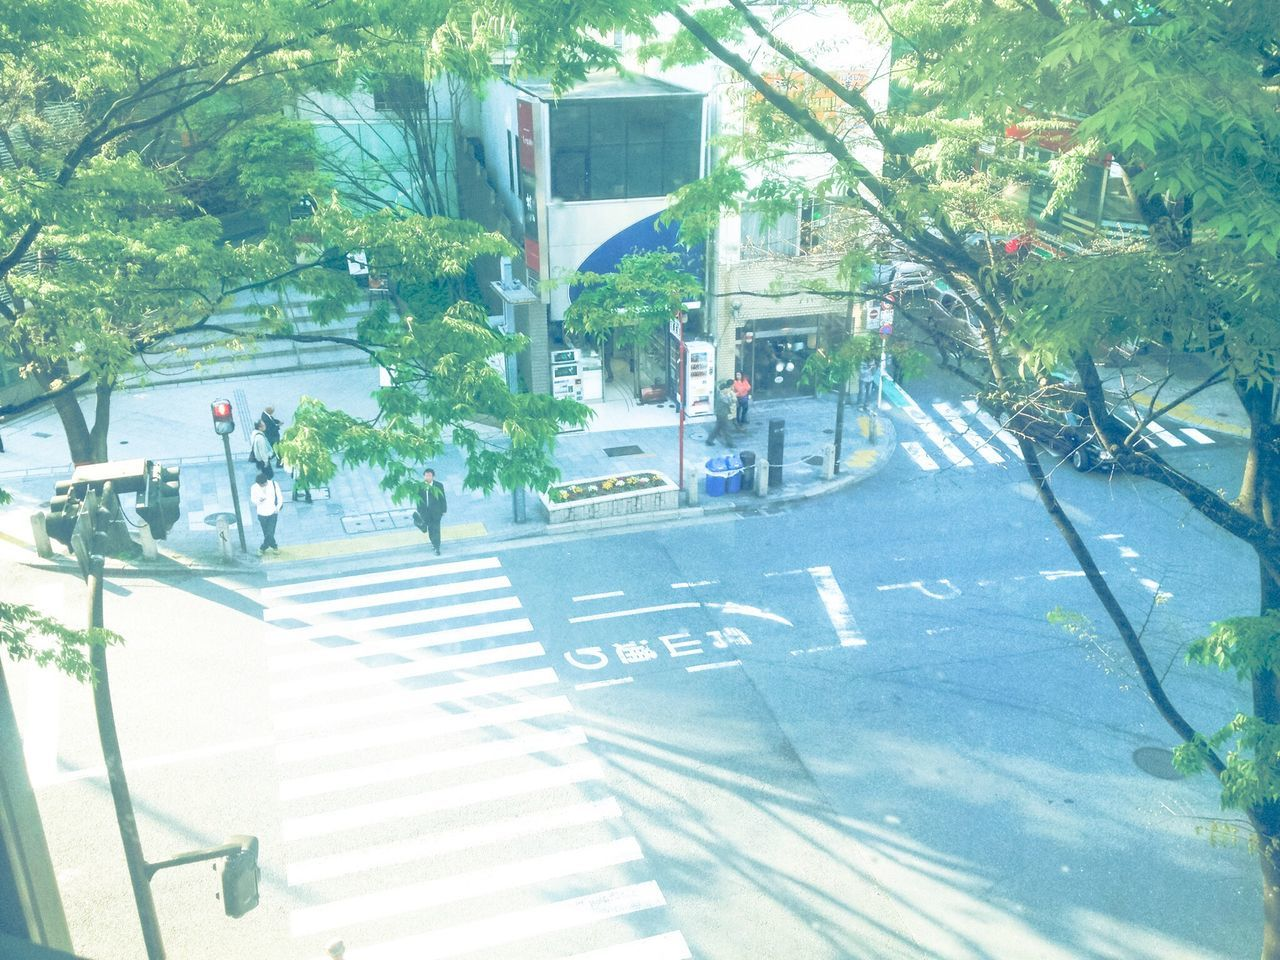 tree, incidental people, plant, day, growth, street, outdoors, sunlight, nature, city, people